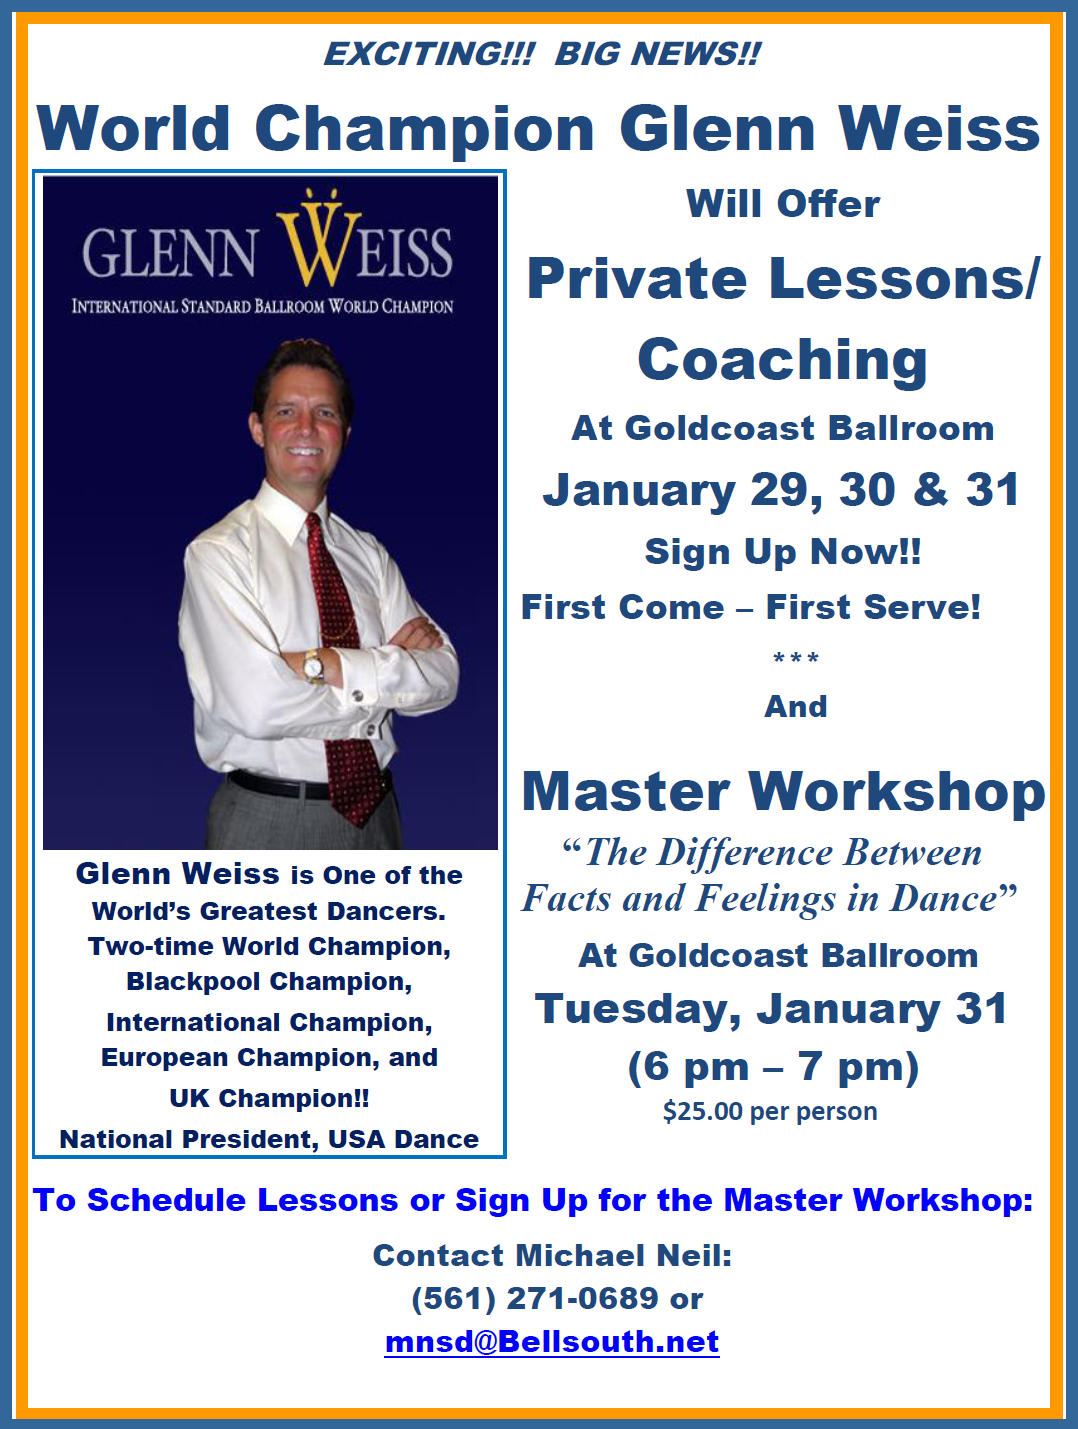 Click to Print Flyer: World Champion Glenn Weiss - Private Lessons & Master Workshop - January 29-31, 2017